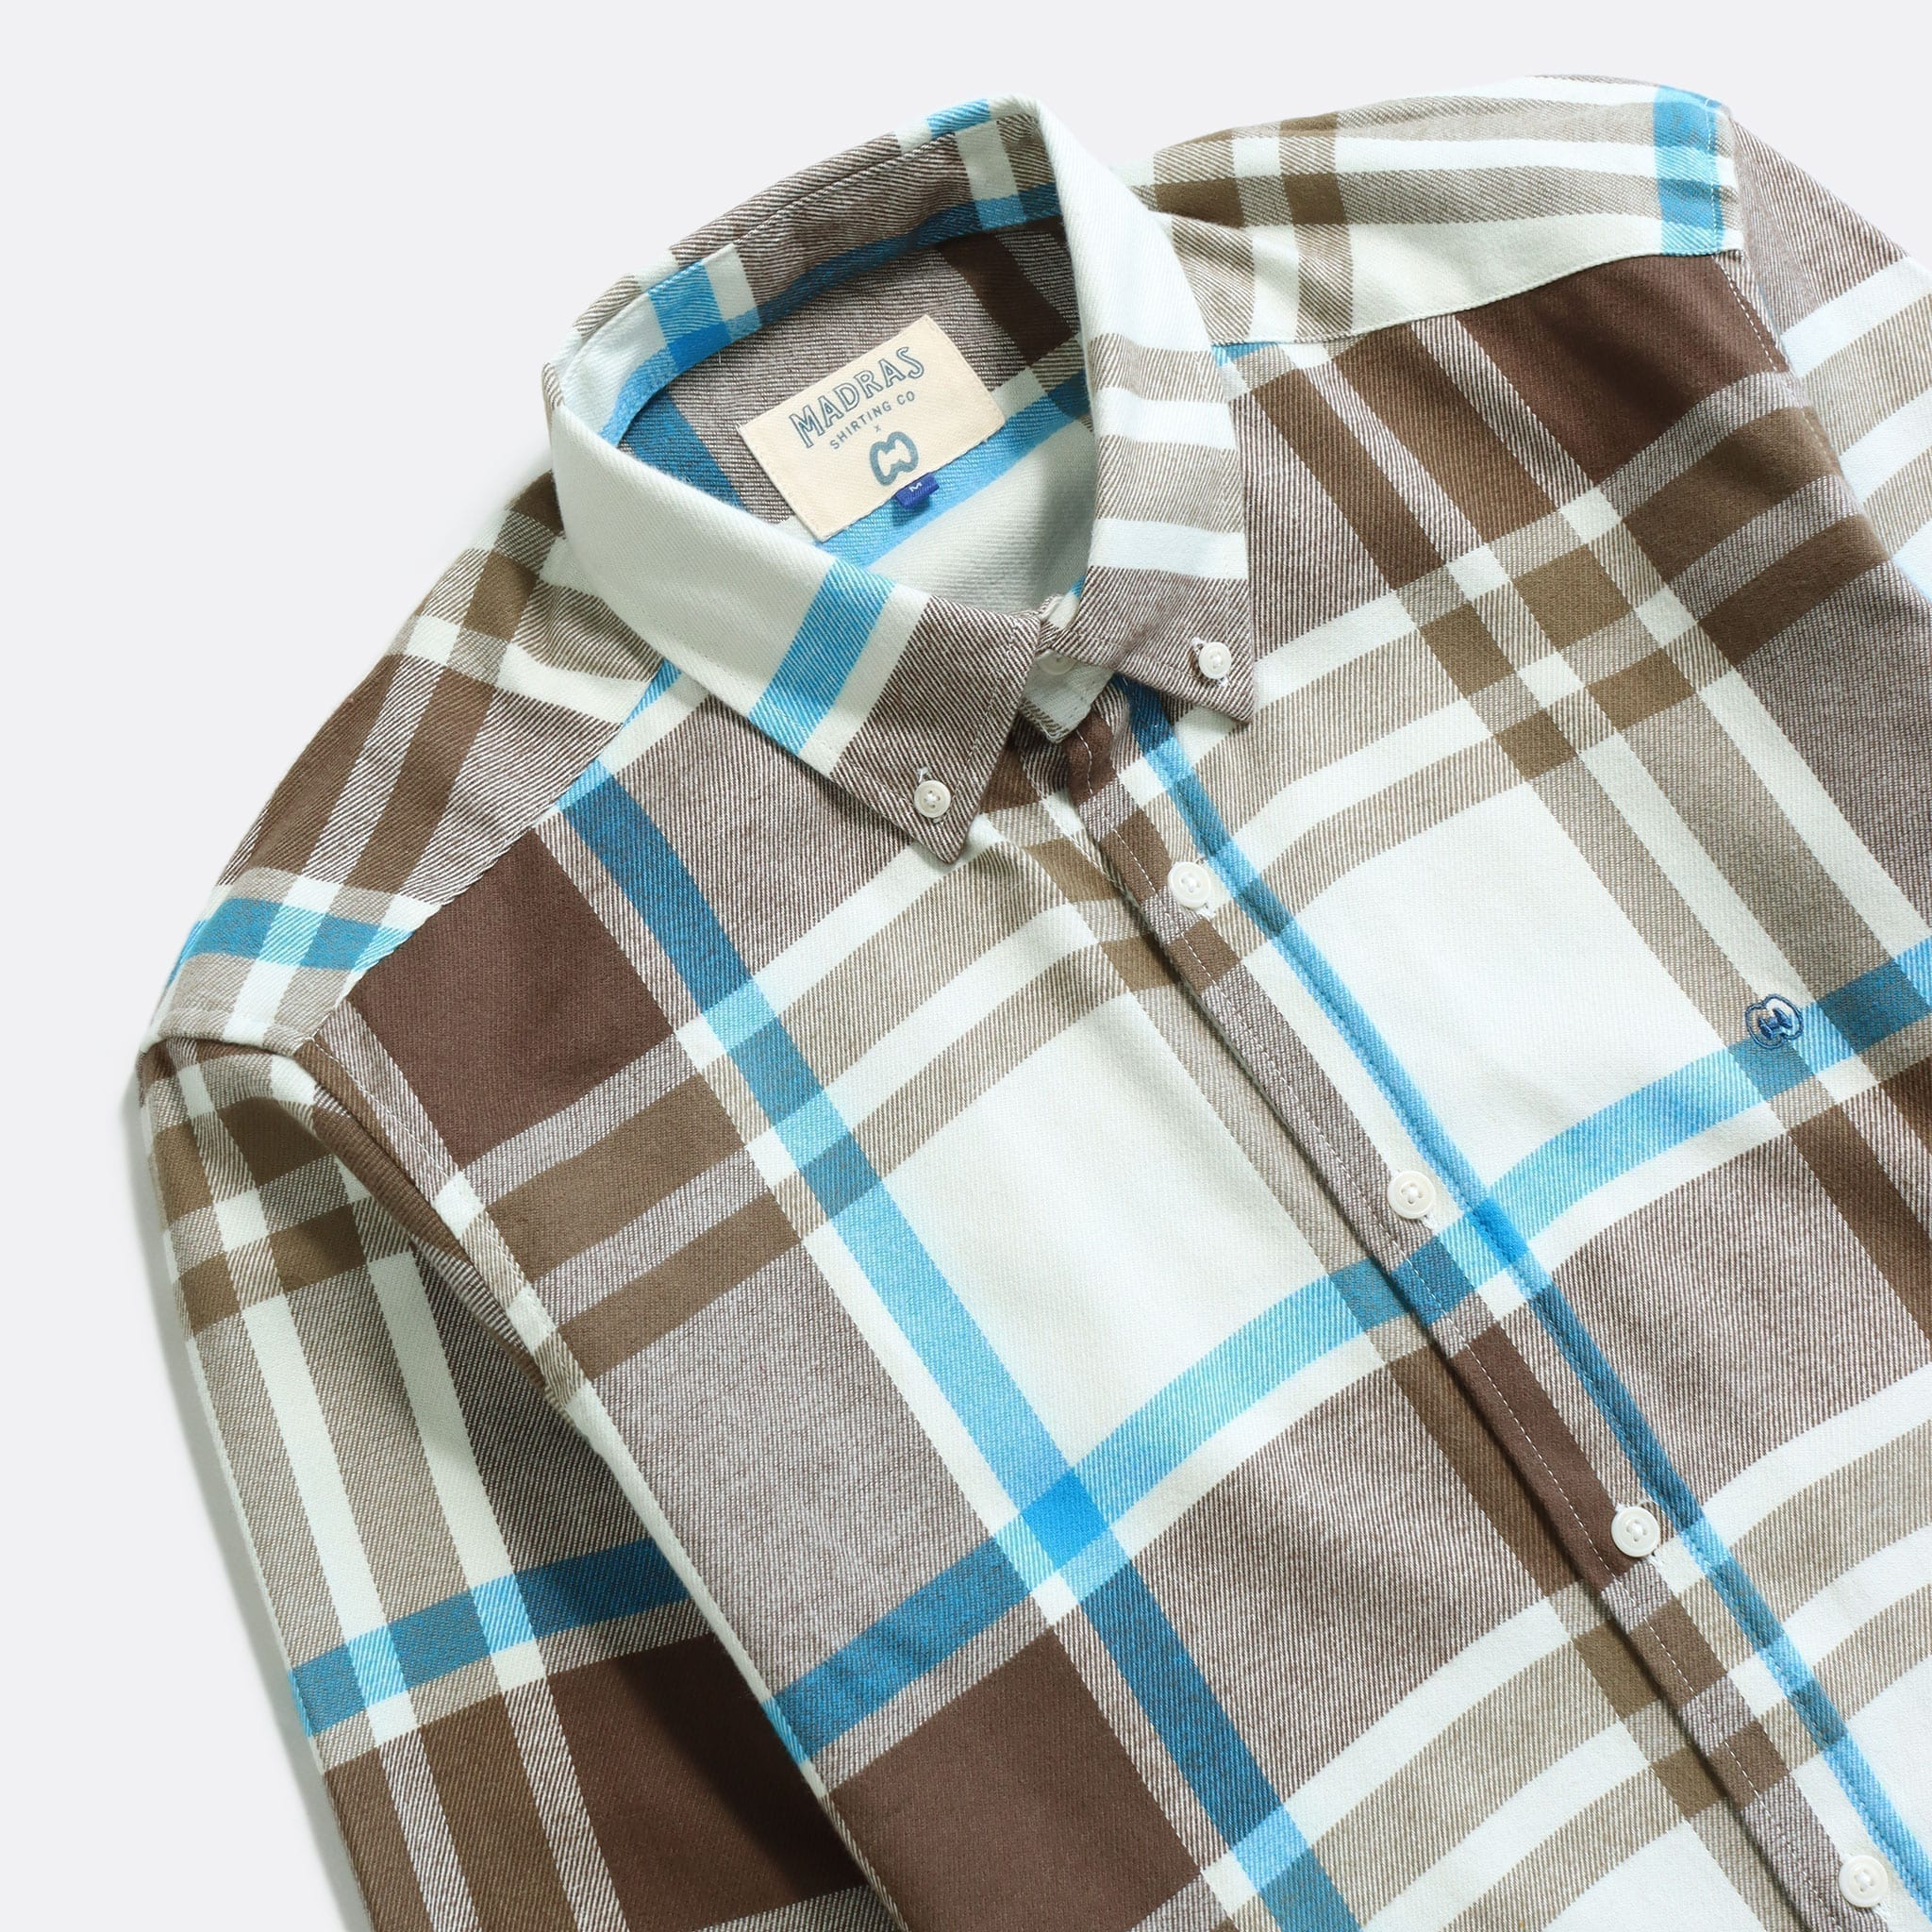 MSCo x Casual Co – Mod Button Down Long Sleeve Shirt a White Brown Check Up-cycled Cotton Flannel Fabric 2